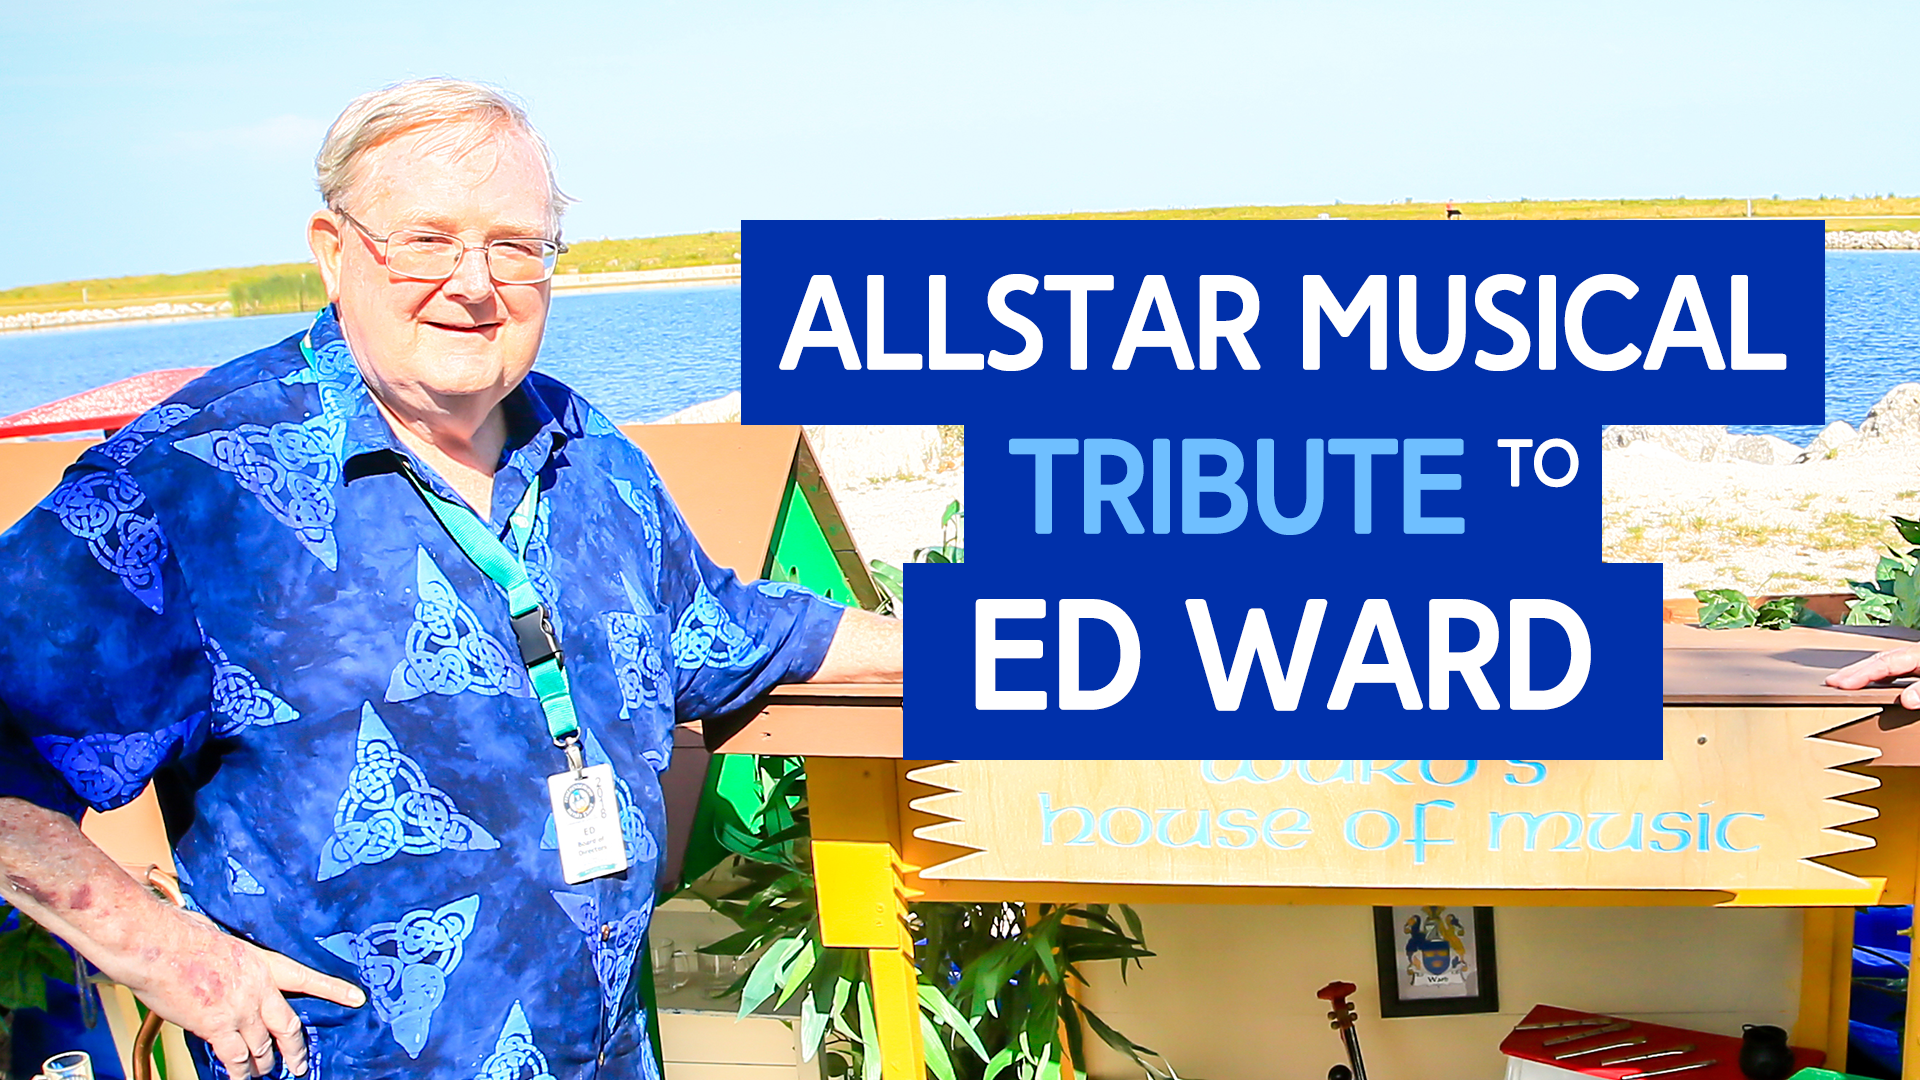 Allstar Musical Tribute to Our Founder, Ed Ward